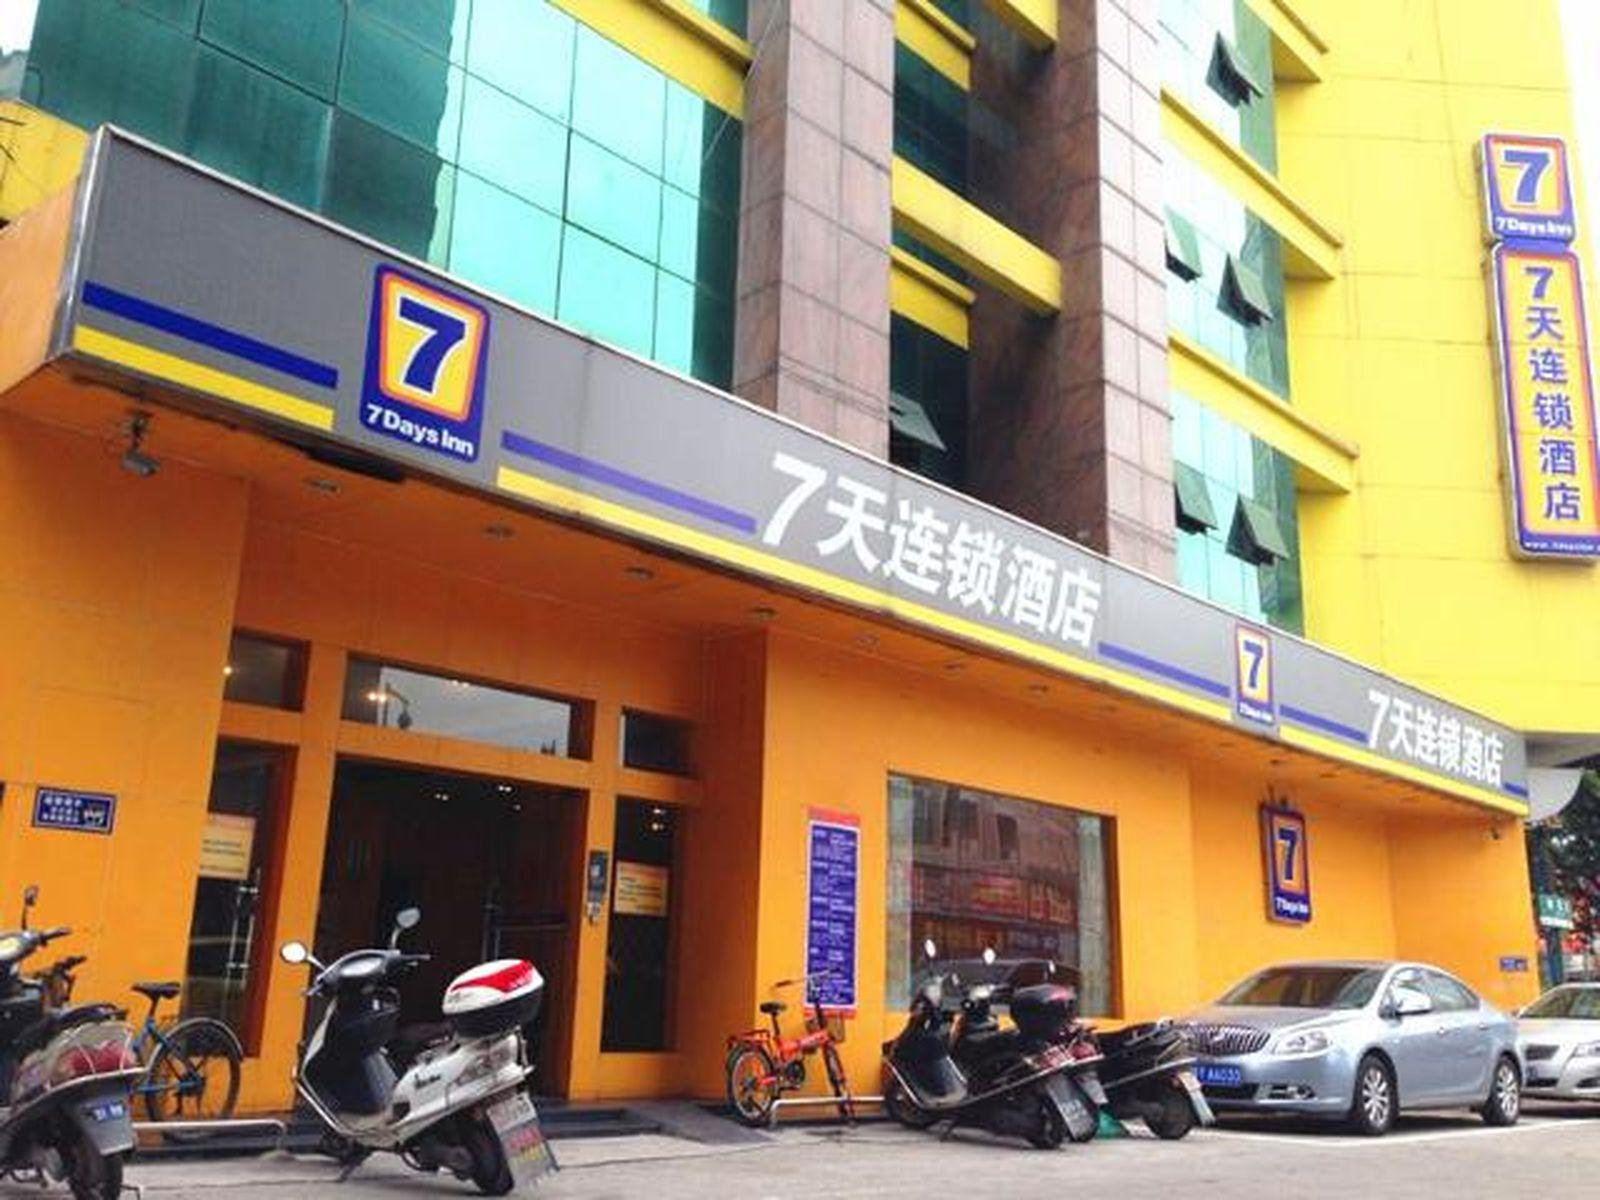 7 Days Inn Foshan Dali Park Branch In China Room Deals